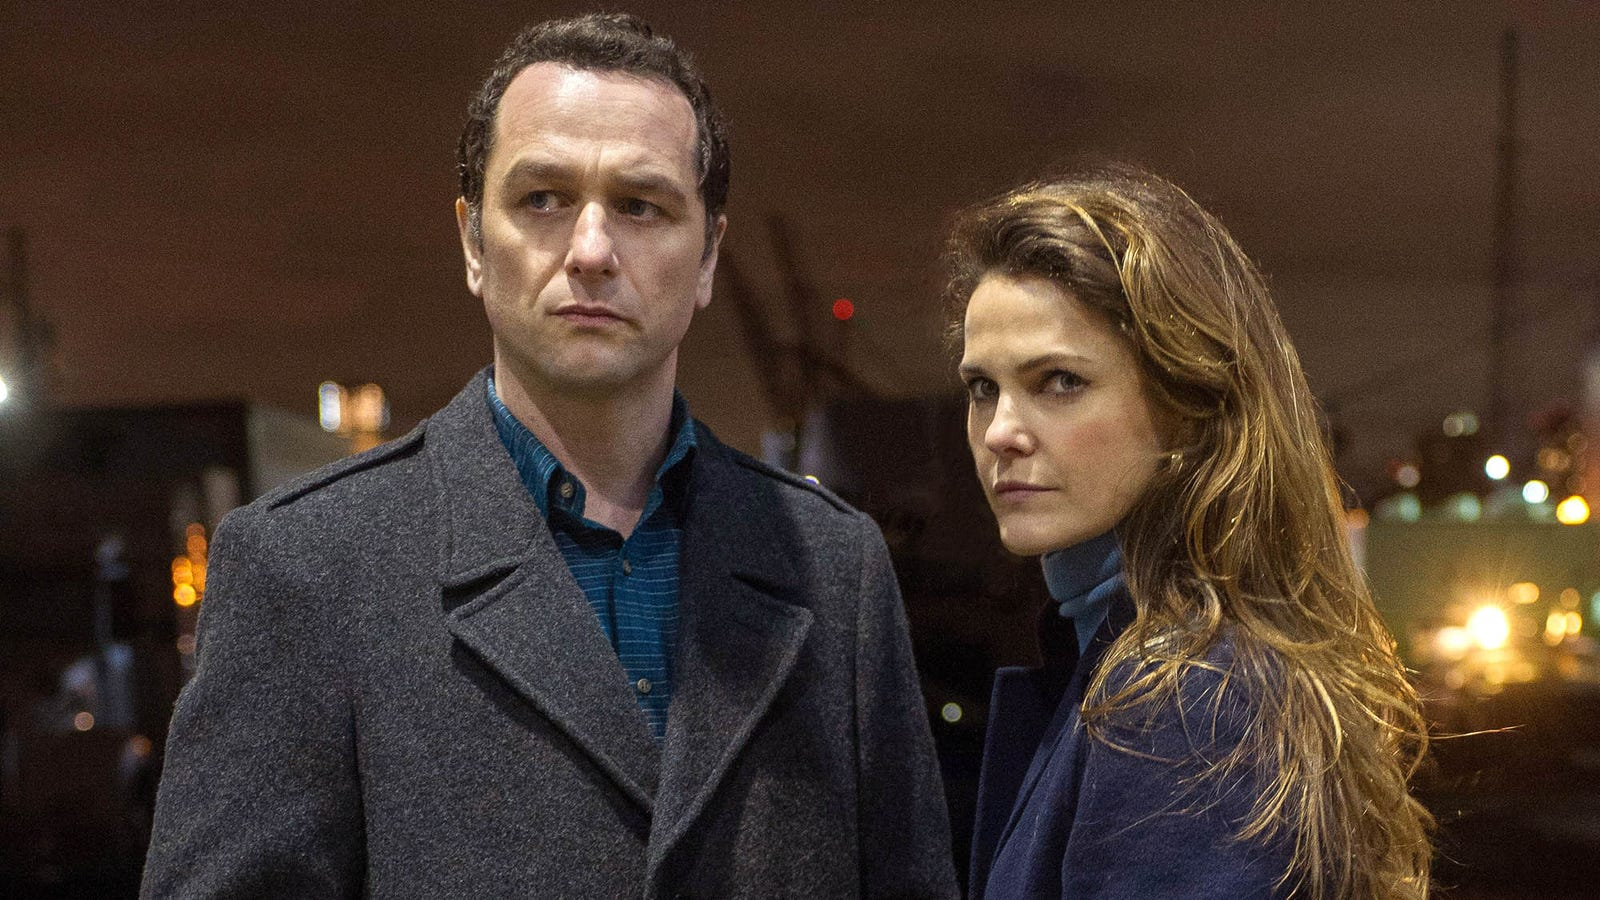 The Americans: The hit FX series ends with Elizabeth and Philip Jennings returning to the Soviet Union after realizing that the crumbling communist state still has better long-term potential as a country than the United States.